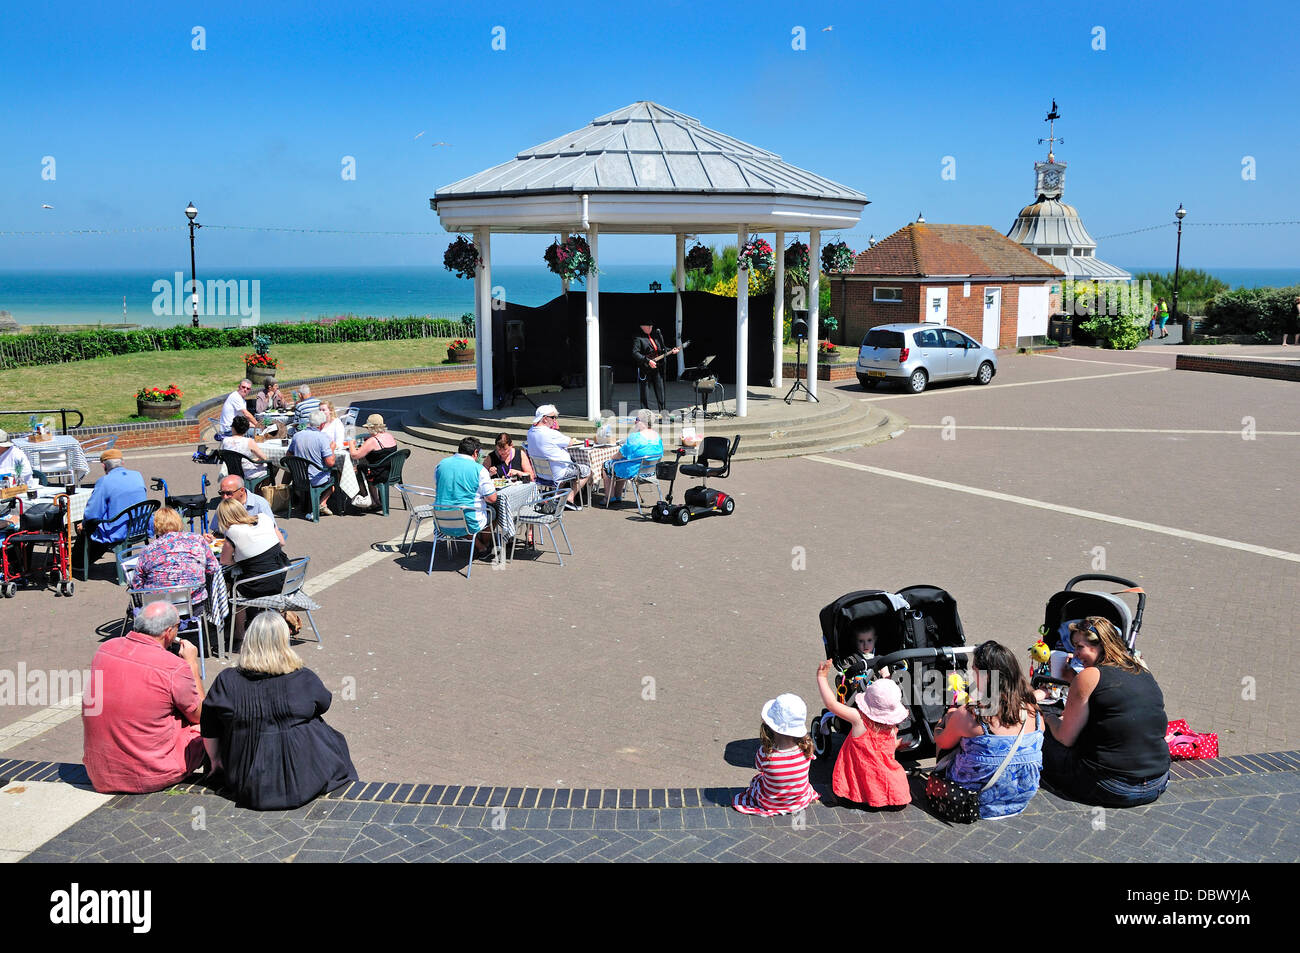 Broadstairs, Kent, England, UK. People listening to a musician at the bandstand - Stock Image